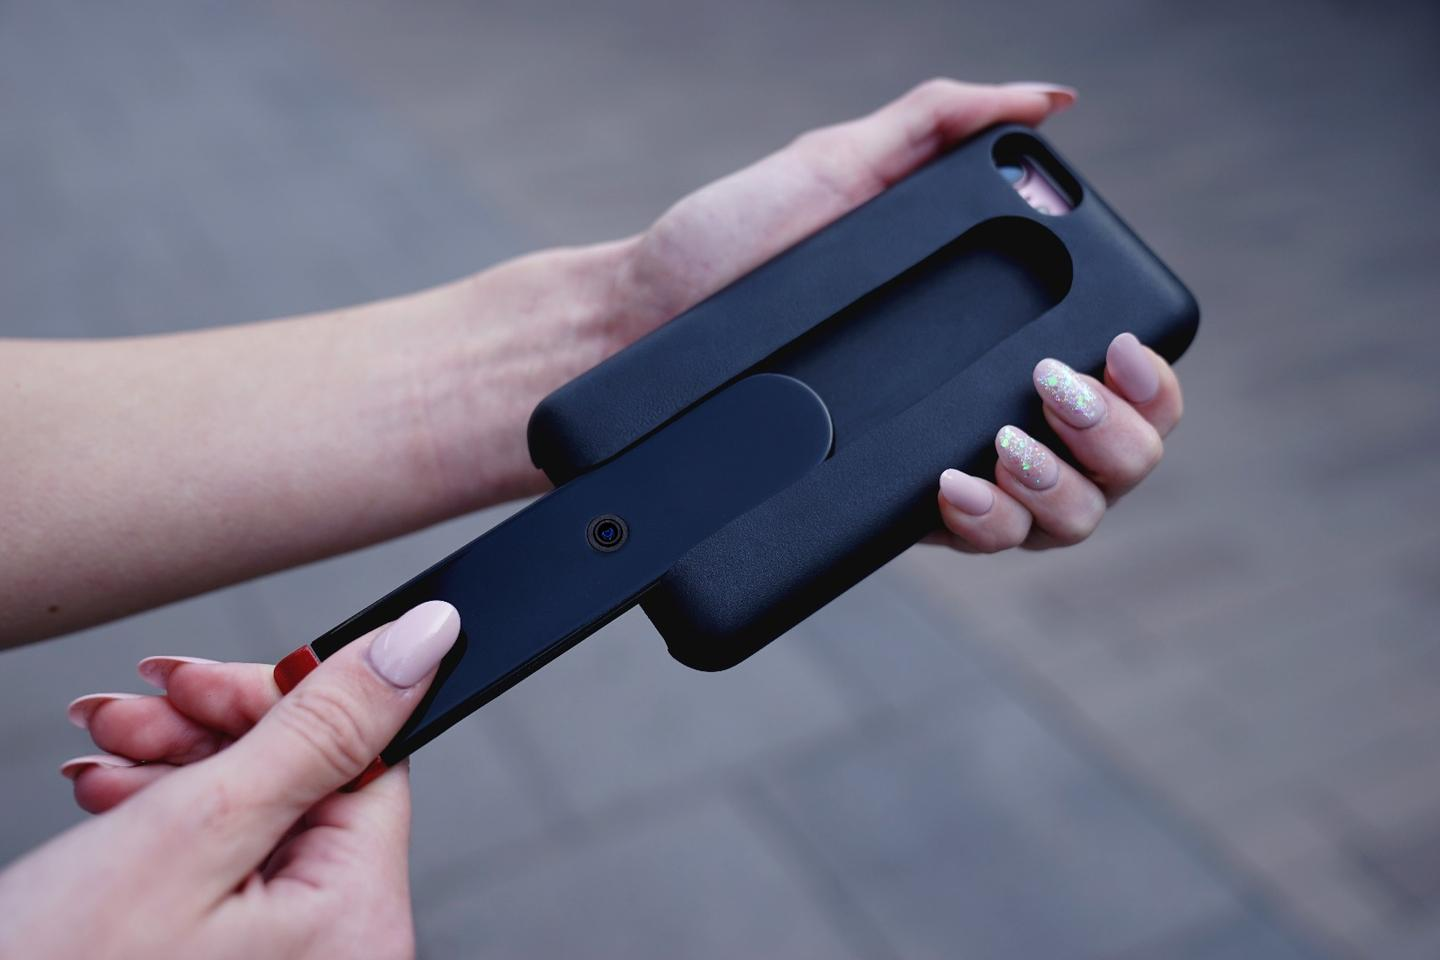 The camera can be slid out of theEvo GoCamcase as needed